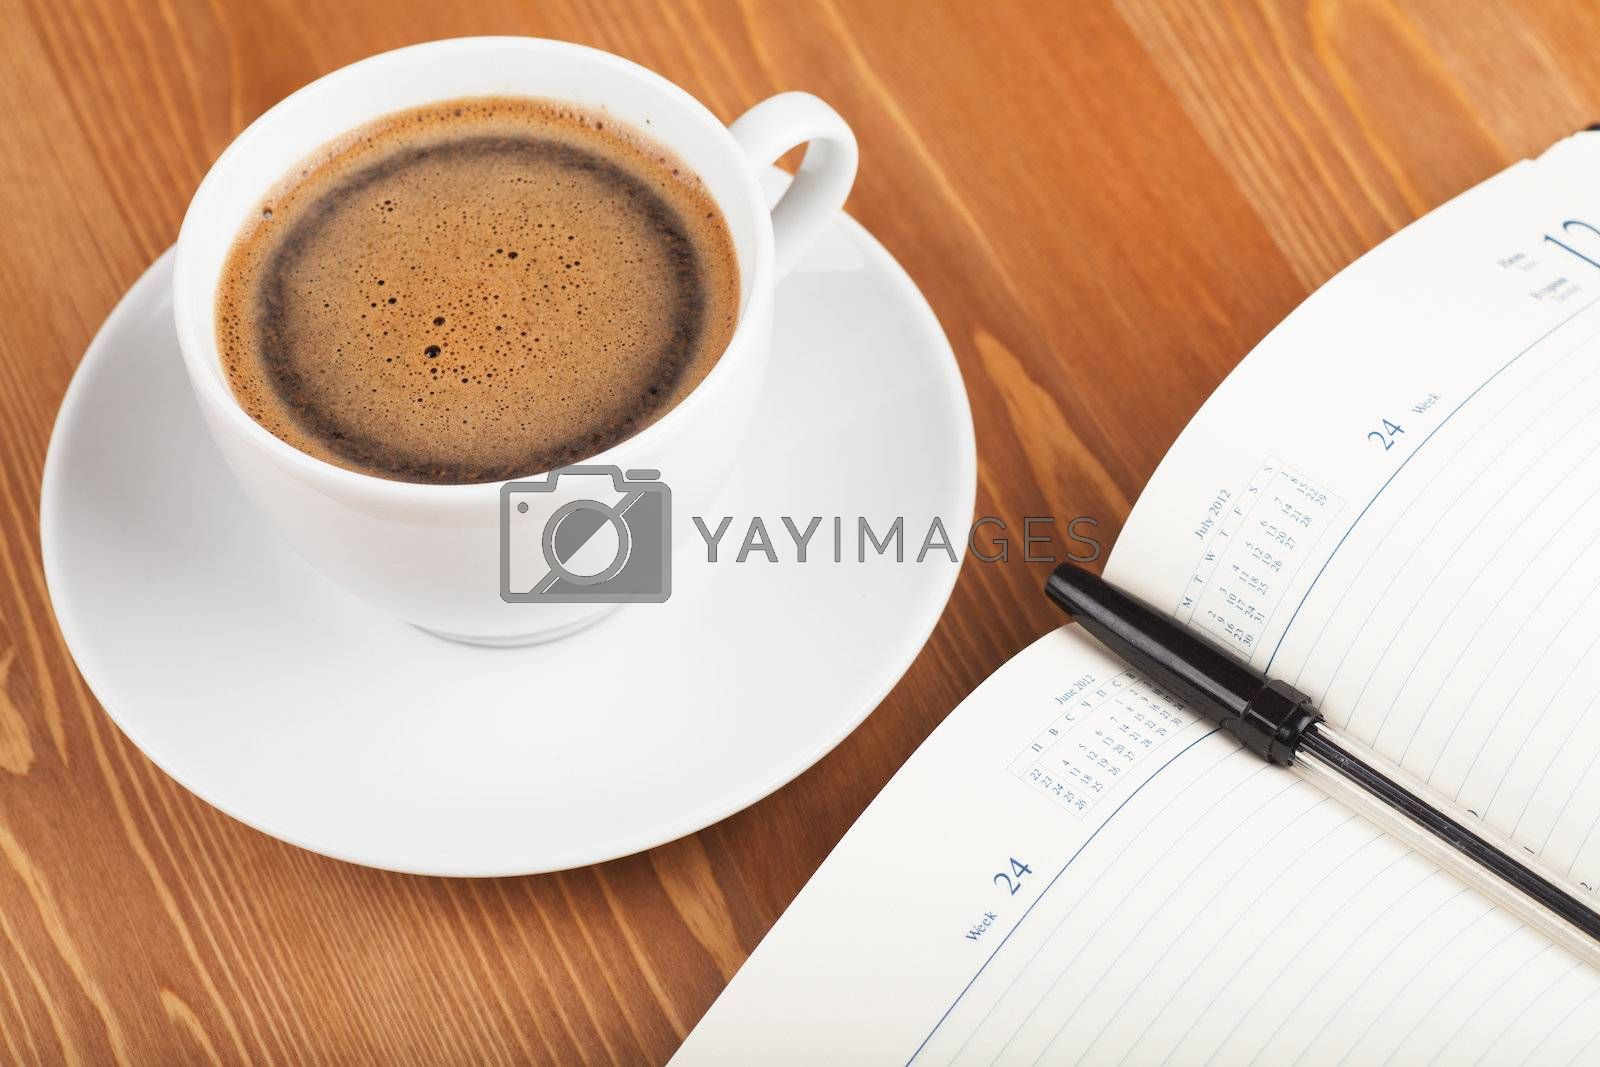 Notebook with pen and cup of coffee on a table. Top view